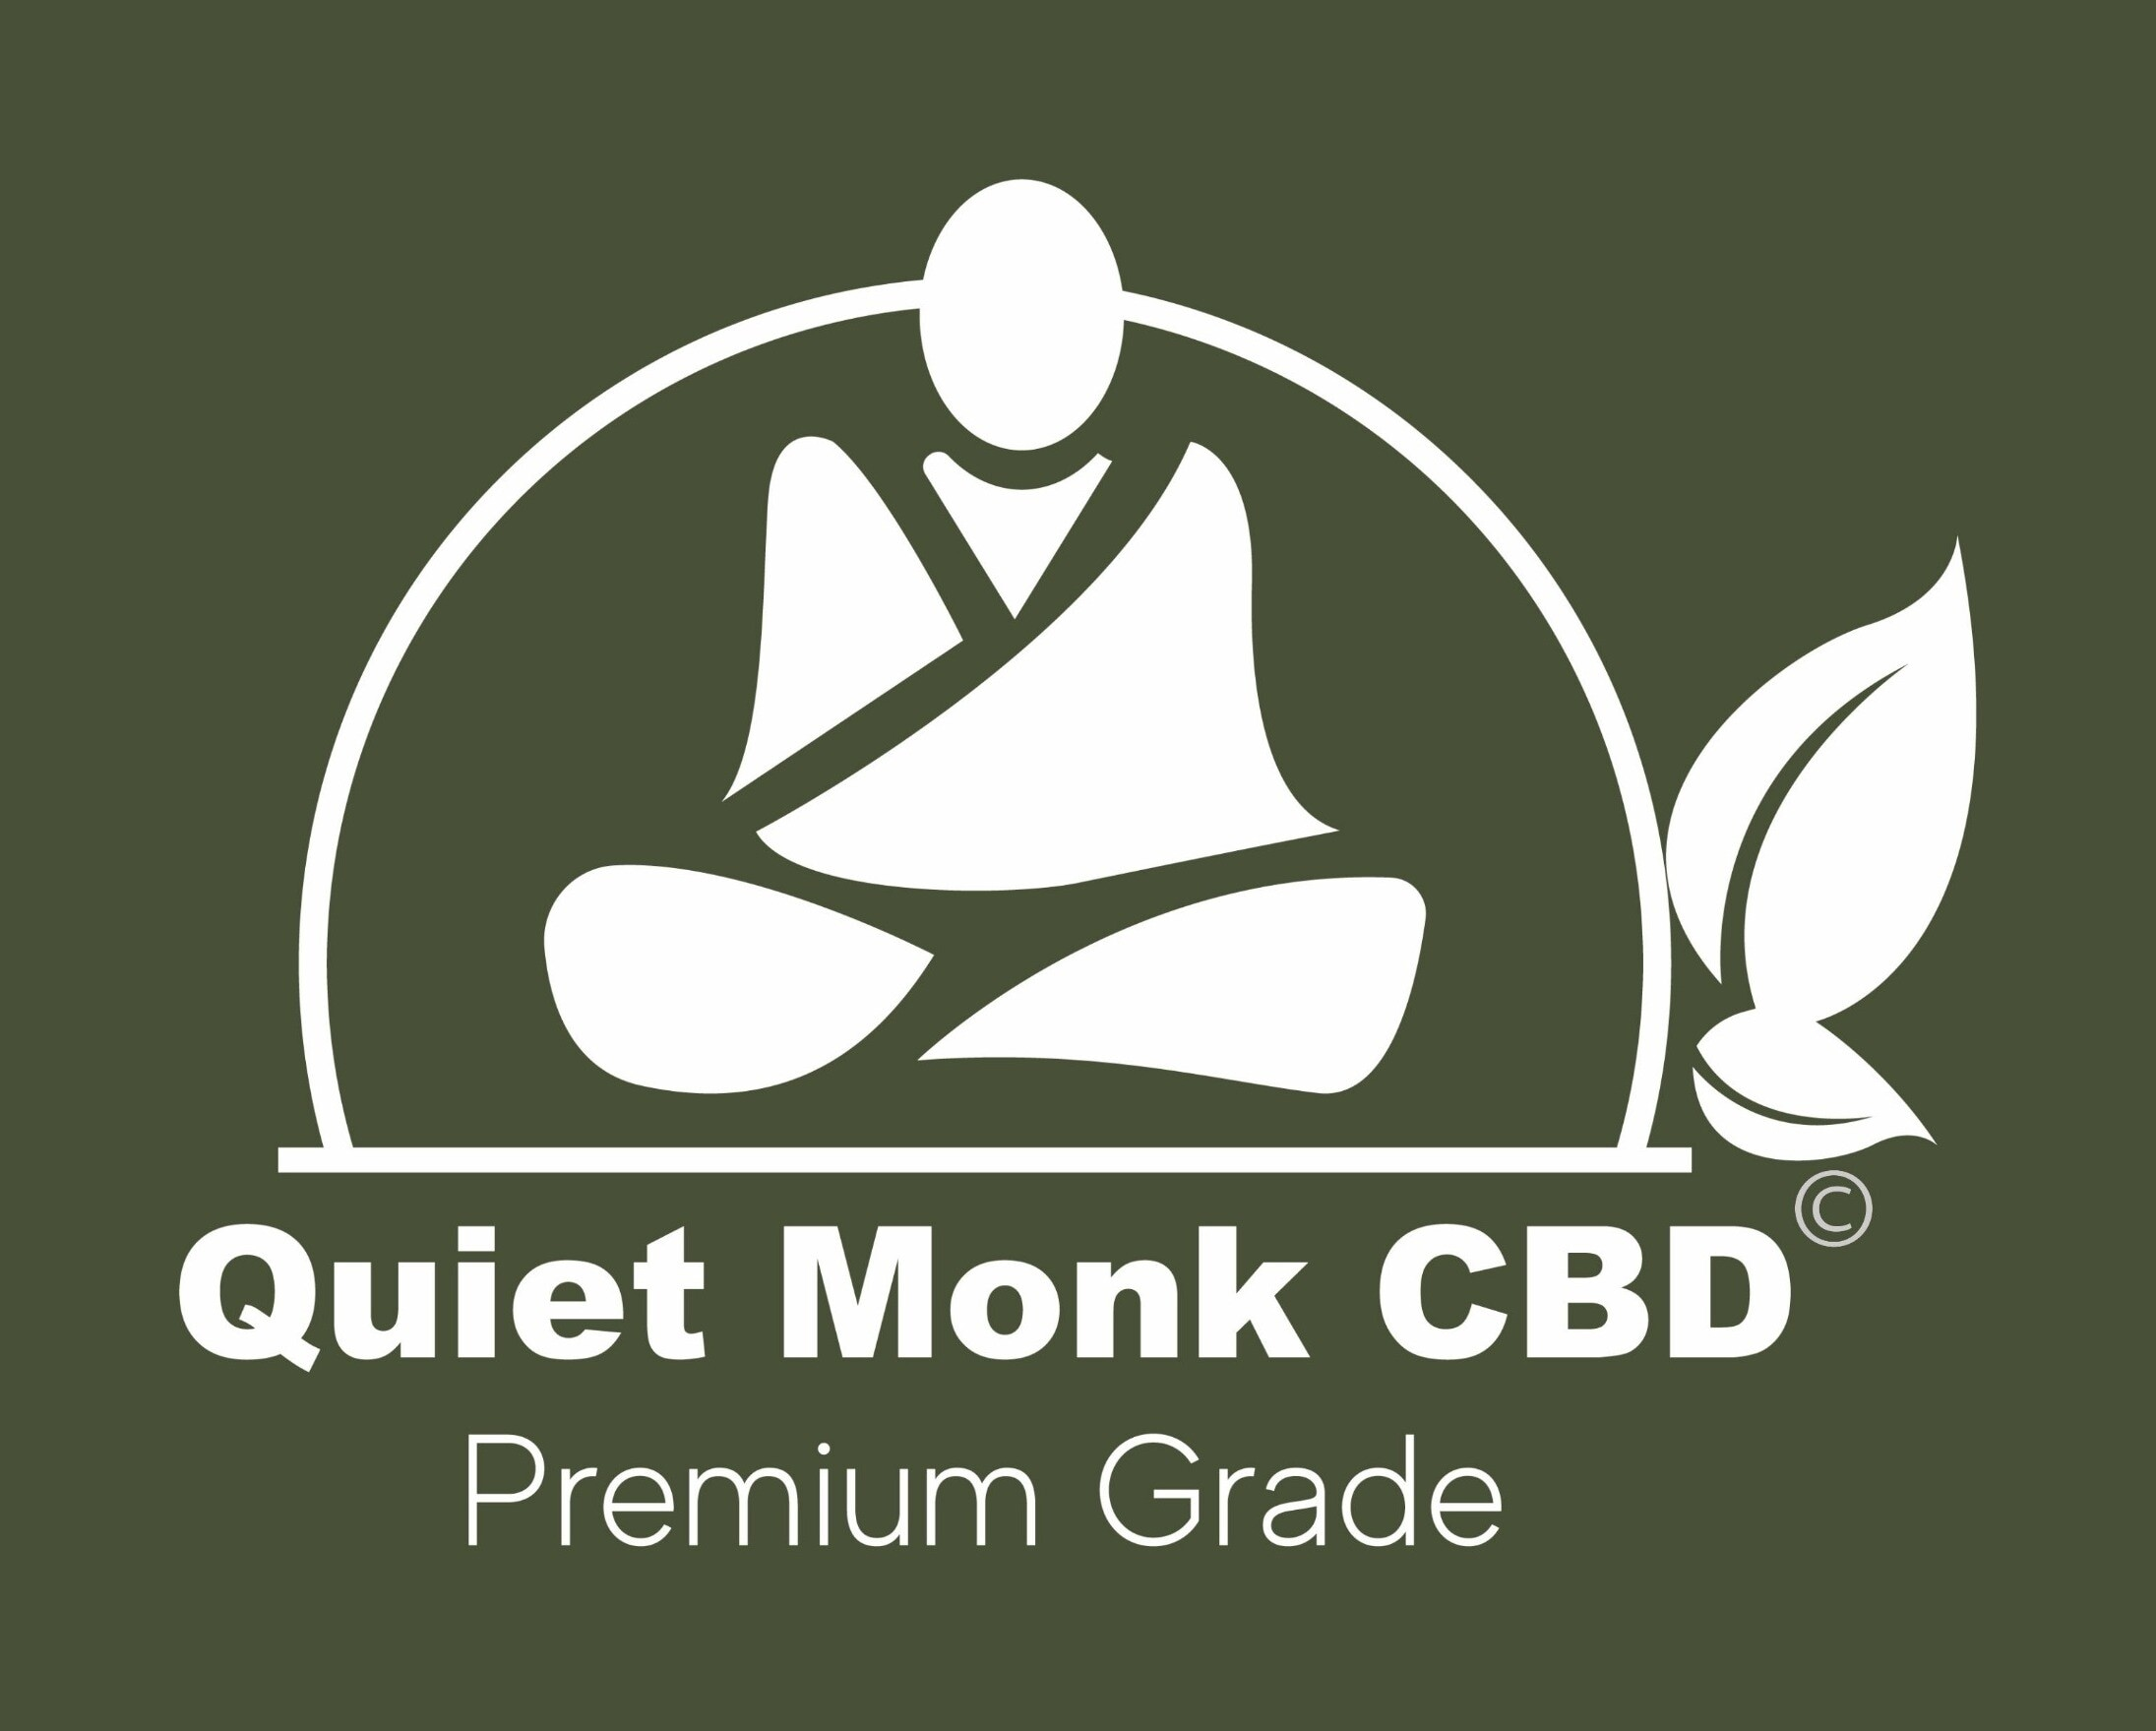 Quiet Monk CBD